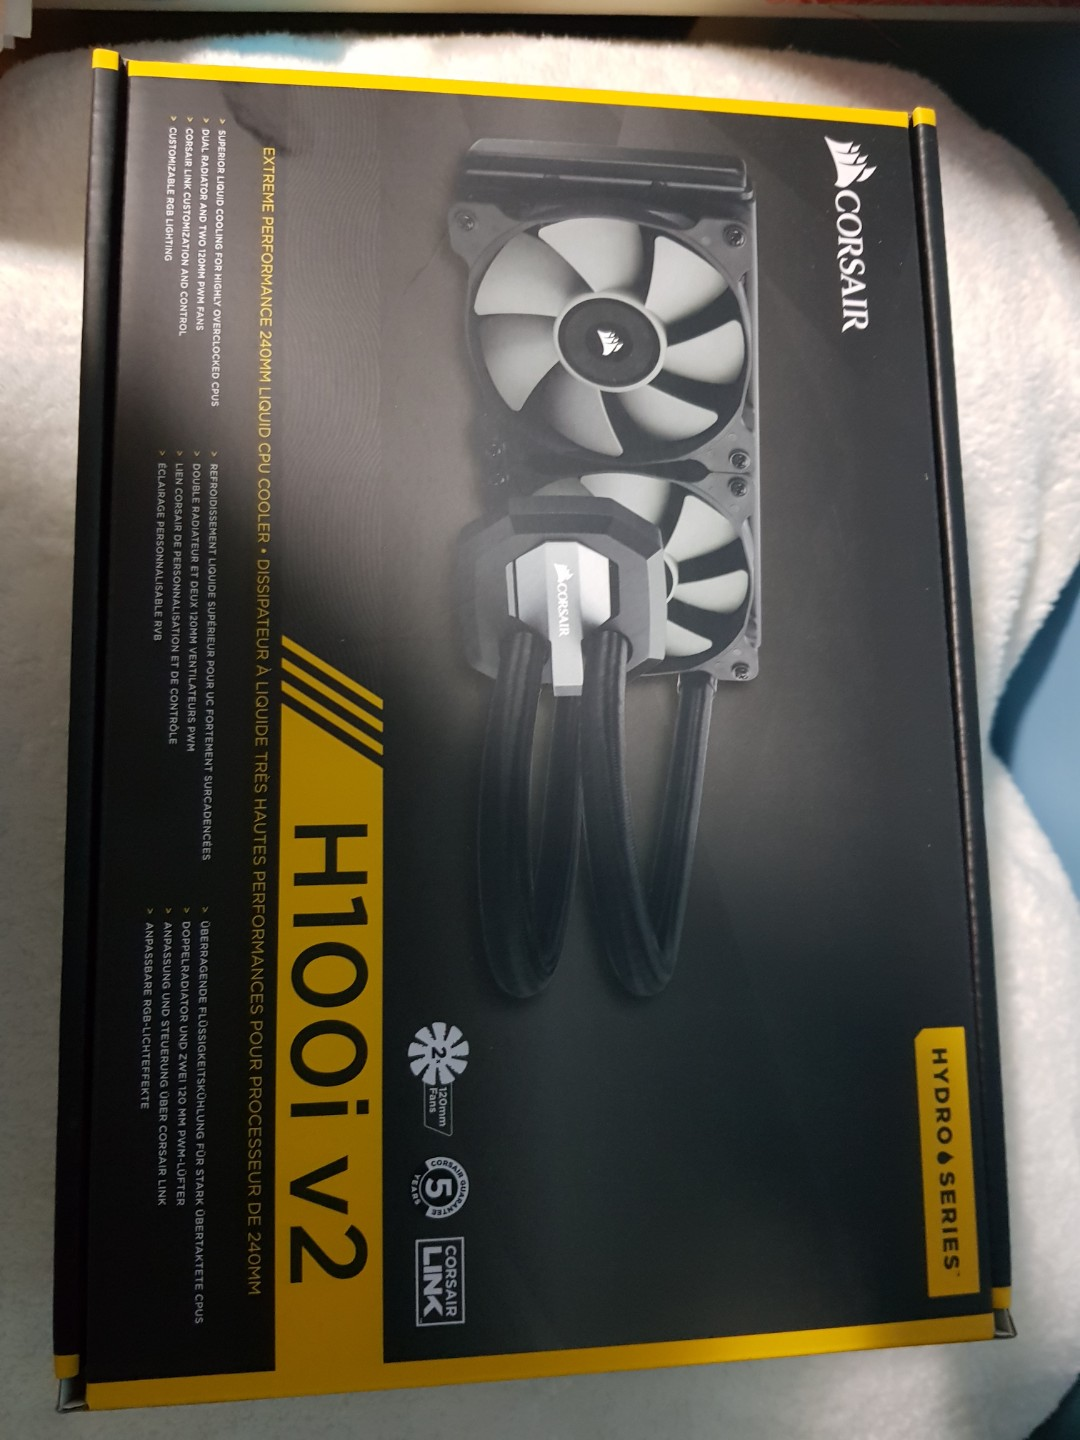 Corsair H100I V2 cpu cooler